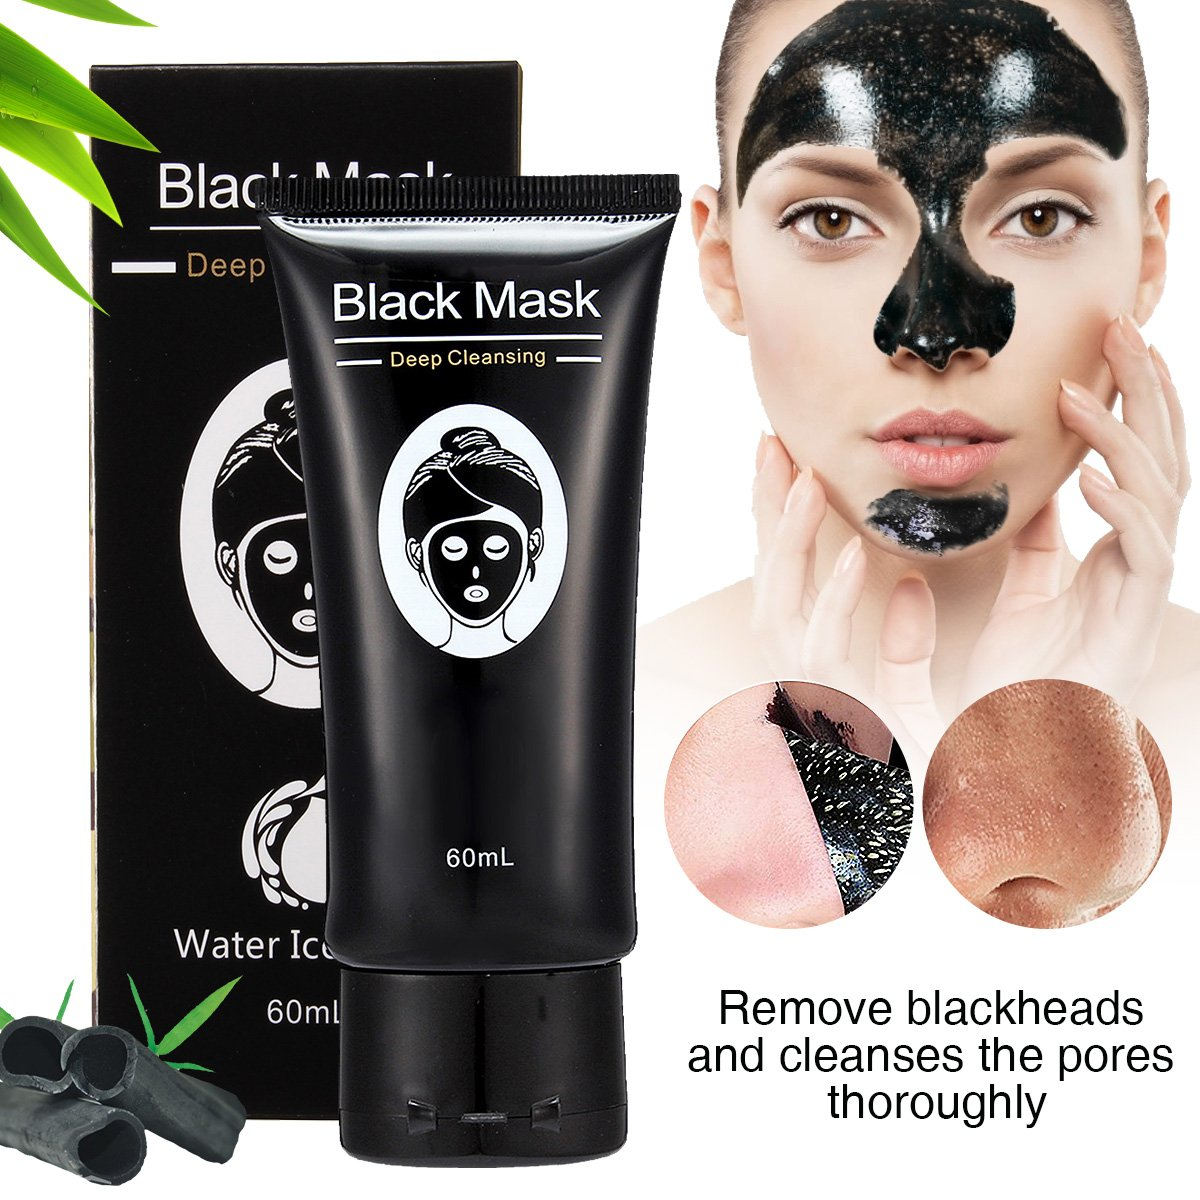 Blackhead Mask - LuckyFine Bamboo Charcoal Blackhead Remover Mask, Purifying Black Peel-off Mask